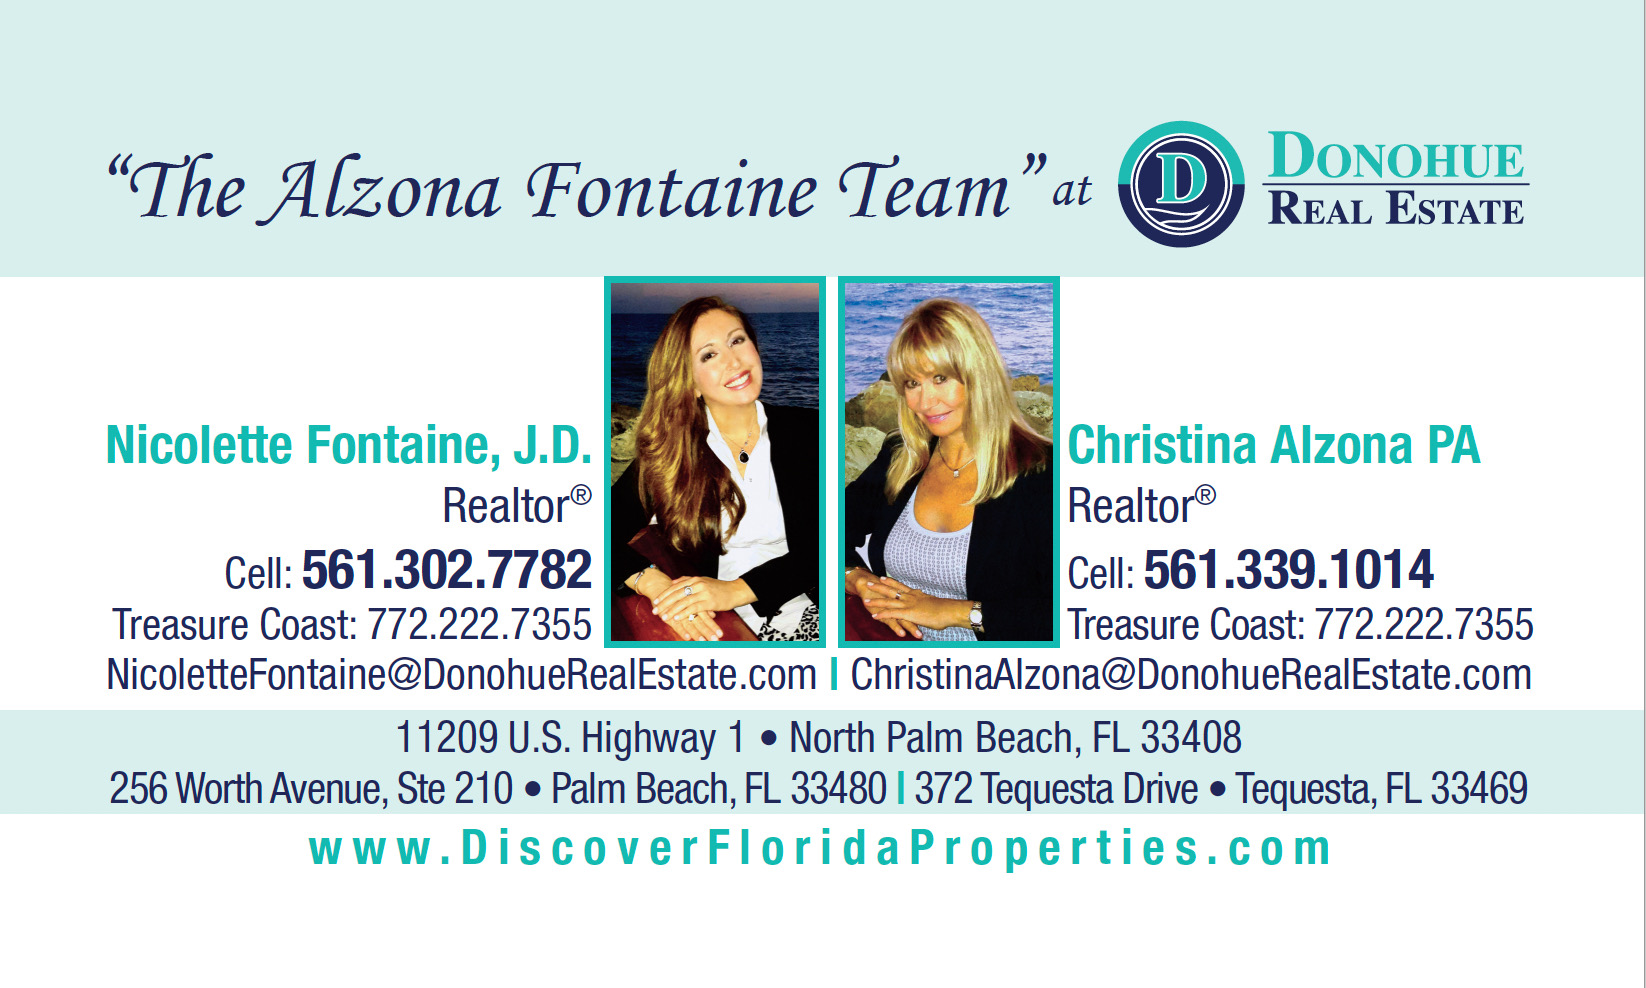 "Nicolette Fontaine & Christina Alzona – Realtors at Donohue Real Estate – Realtor at Future Home Realty 11209 U.S. Highway 1, North Palm Beach, FL 33408 256 Worth Avenue, Ste. 210, Palm Beach, FL 33480 372 Tequesta Dr., Tequesta, FL 33469 Now may be the best time to make your Next Move! Get two positive, helpful real estate professionals, Christina Alzona PA with 20 years experience and Nicolette Fontaine J.D. with 12 years experience, that will guide your every step in Buying or Selling a Home: Trusted resource for answers about the process Innovative marketing strategies Expertise about neighborhood features Ability to target home searches Strong negotiation skills Support through the closing and beyond. ""The Alzona Fontaine Team"" at Donohue Real Estate LLC are Polish and Italian speaking Licensed Florida Real Estate Agents, who sell properties throughout the Palm Beaches and The Treasure Coast, Florida. Christina is a native of Warsaw, Poland and has worked with Polish and European Real Estate Clients; Nicolette has worked with International Buyers and Investors. Specializing in Waterfront Real Estate, Luxury Homes, Oceanfront and Intracoastal Condos, Golfcourse Properties, Equestrian/Farm Properties, Residential Resale, New Home Construction & Commercial Real Estate throughout Palm Beach County, Martin County and St Lucie County, Southeast Florida. - ""The Alzona Fontaine Team"" oferuje kompleksową obsługę klienta w obrocie nieruchomościami (kupno i sprzedaż) w Palm Beach County, Martin County and St Lucie County na południowo-wschodnim wybrzeżu Florydy. Oprócz angielskiego, Christina i Nicolette mówią biegle po polsku i włosku. Christina pochodzi z Warszawy i ma ponad 20-letnie doświadczenie w pośrednictwie obrotu nieruchomościami. Nicolette ma ponad 12-letnie doświadczenie na rynku nieruchomości. Christina i Nicolette specjalizują się między innymi w nieruchomościach luksusowych nad wodą, przy plaży i na polach golfowych. – Nicolette: (561) 302-7782 Christina: (561) 339-1014 Treasure Coast: (772) 222-7355 – www.DiscoverFloridaProperties.com Facebook.com/DiscoverFloridaProperties"